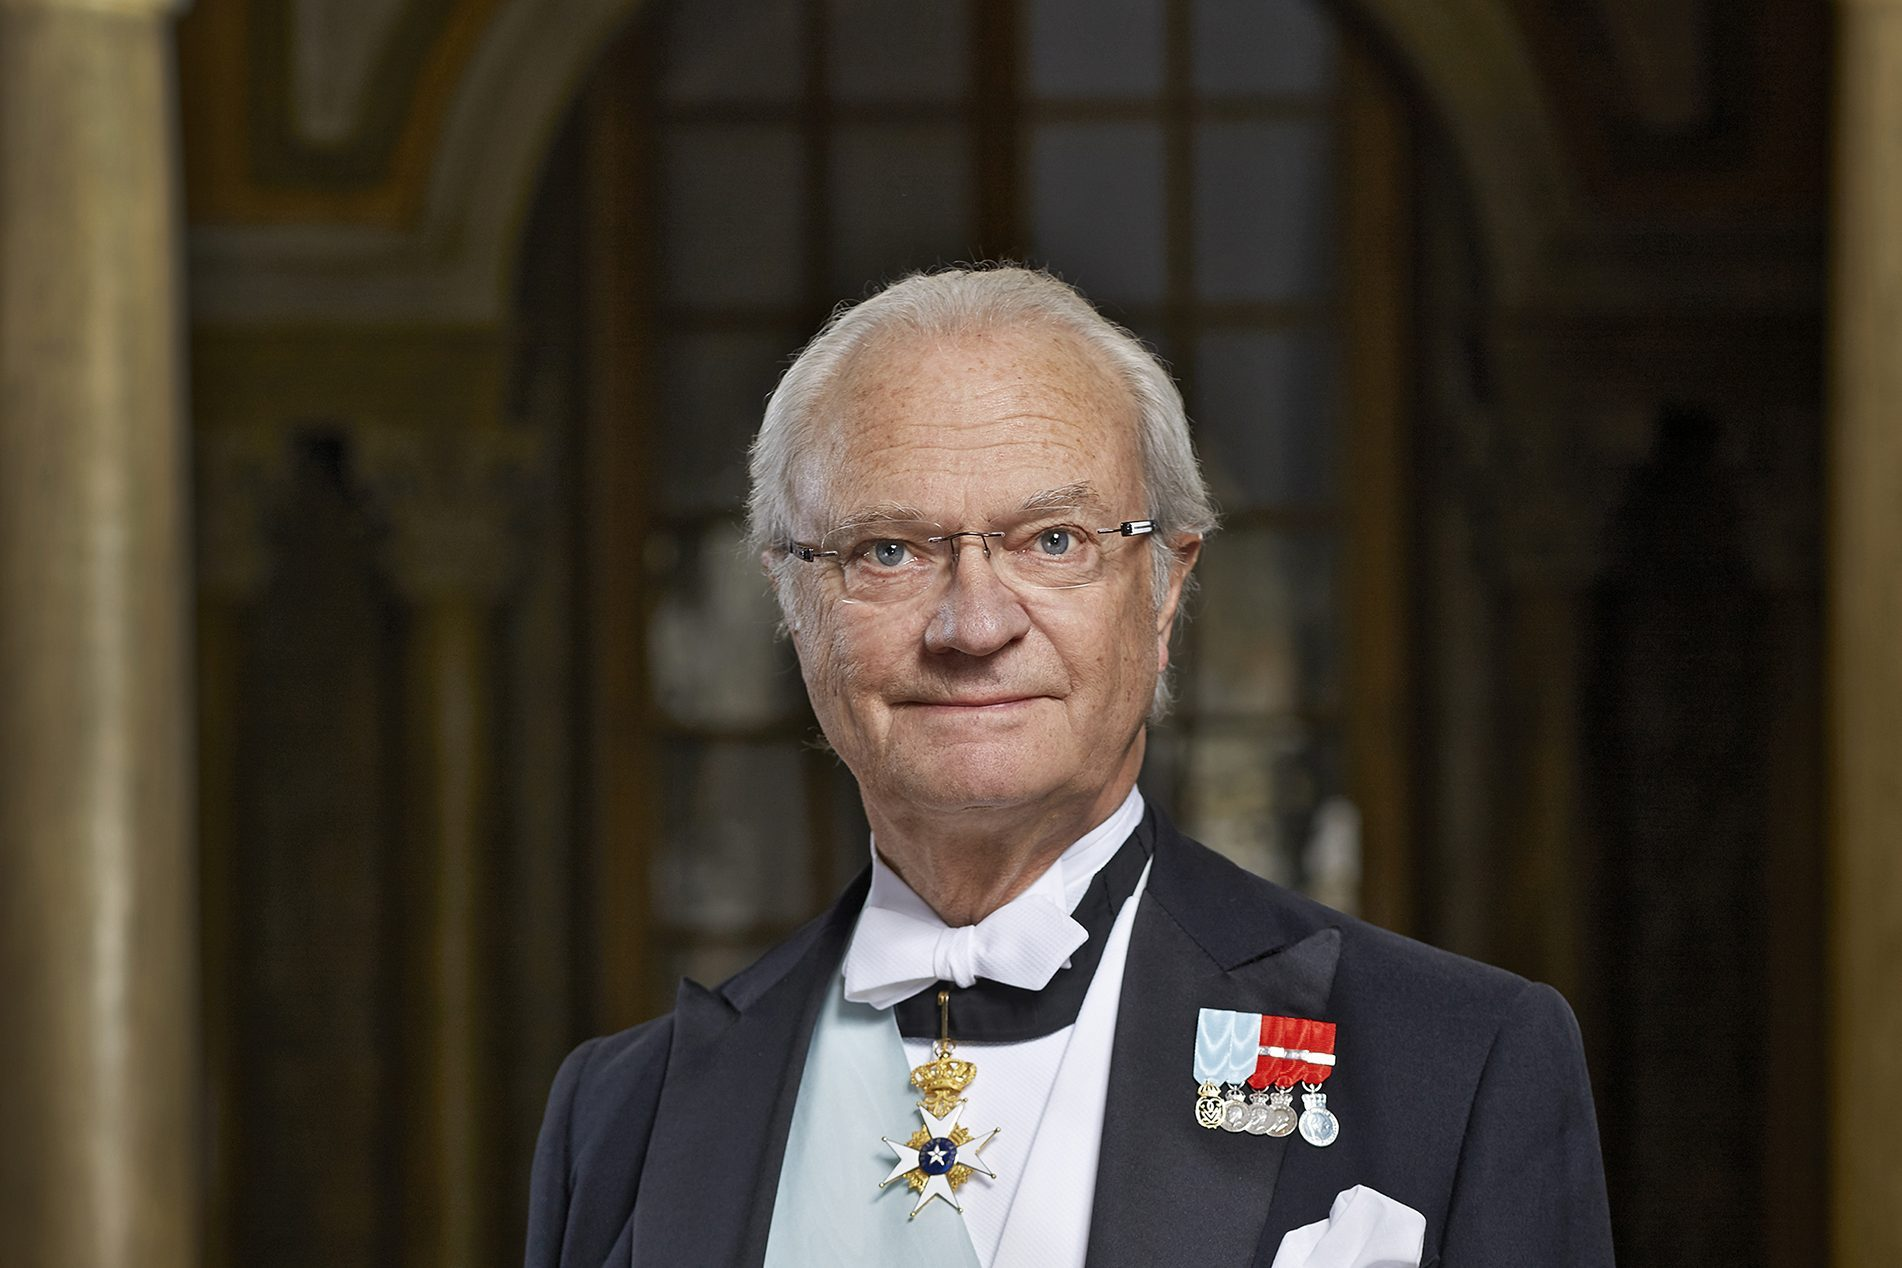 Photo: Peter Knutson, The Royal Court, Sweden